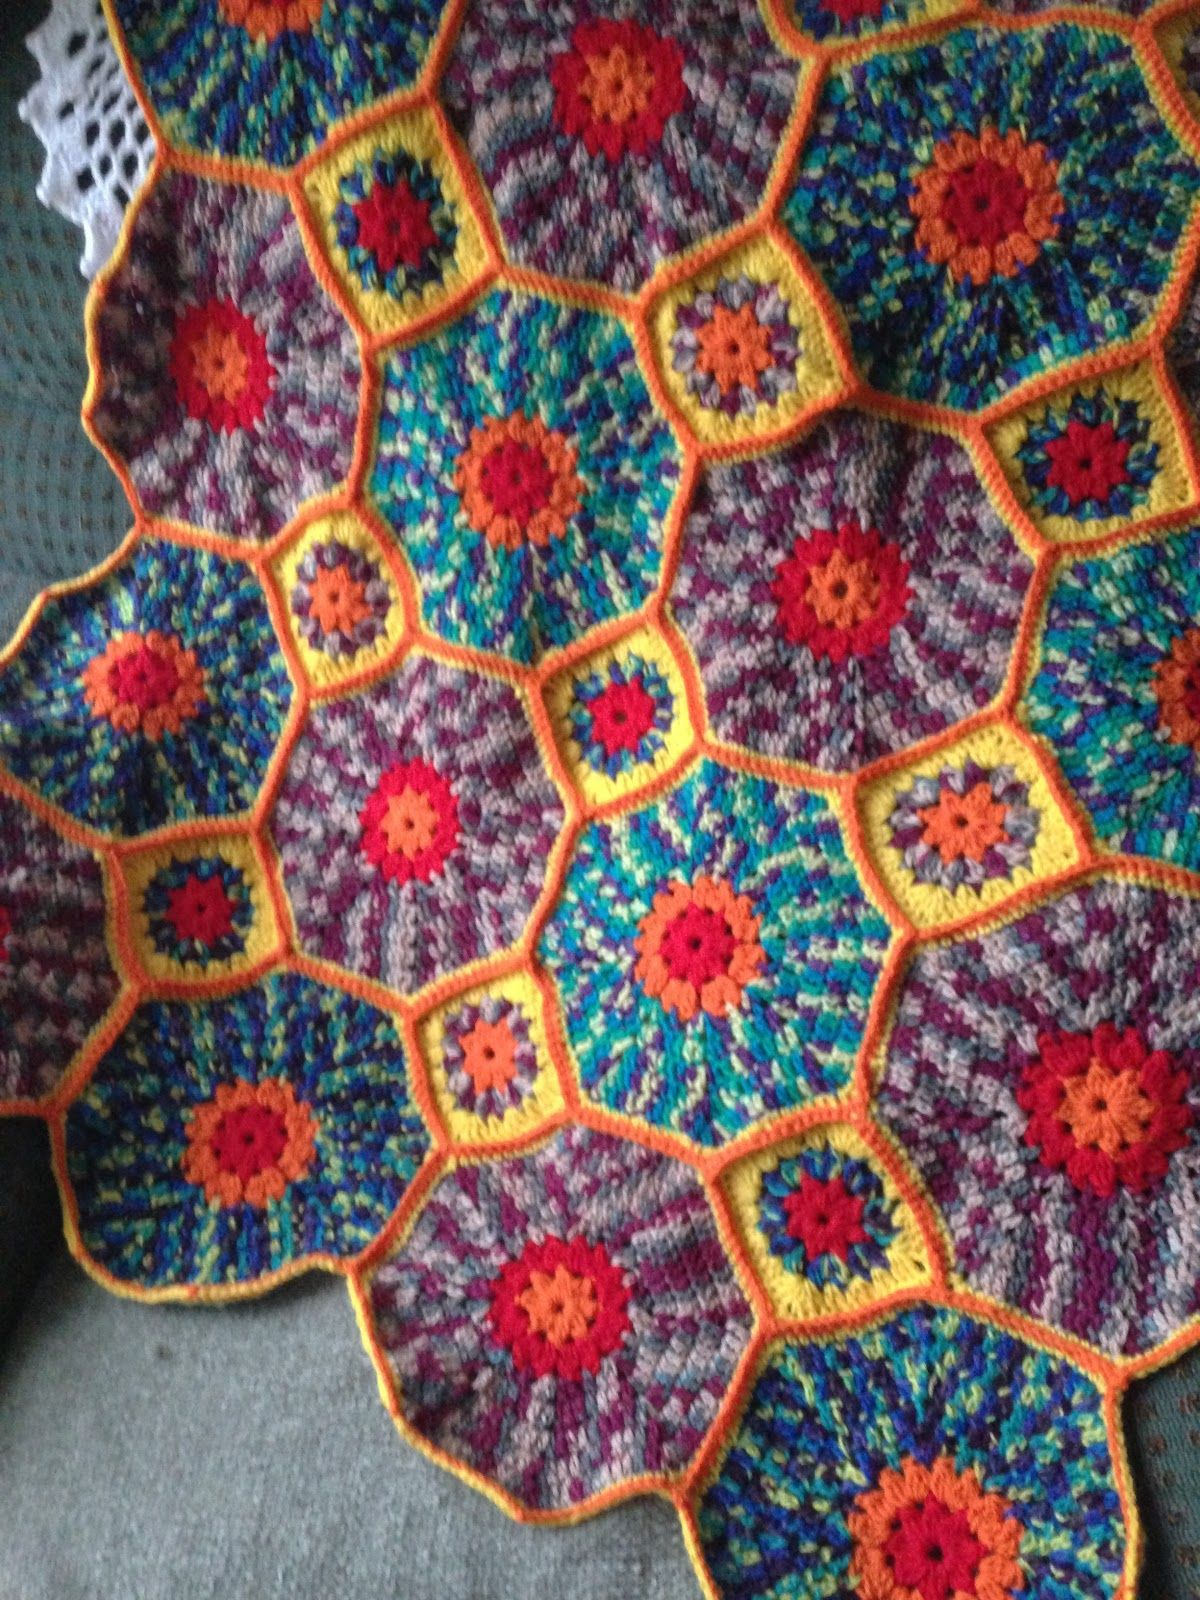 MonikaRose Crochets: Octagon and Square Afghan Completed | Crochet ...